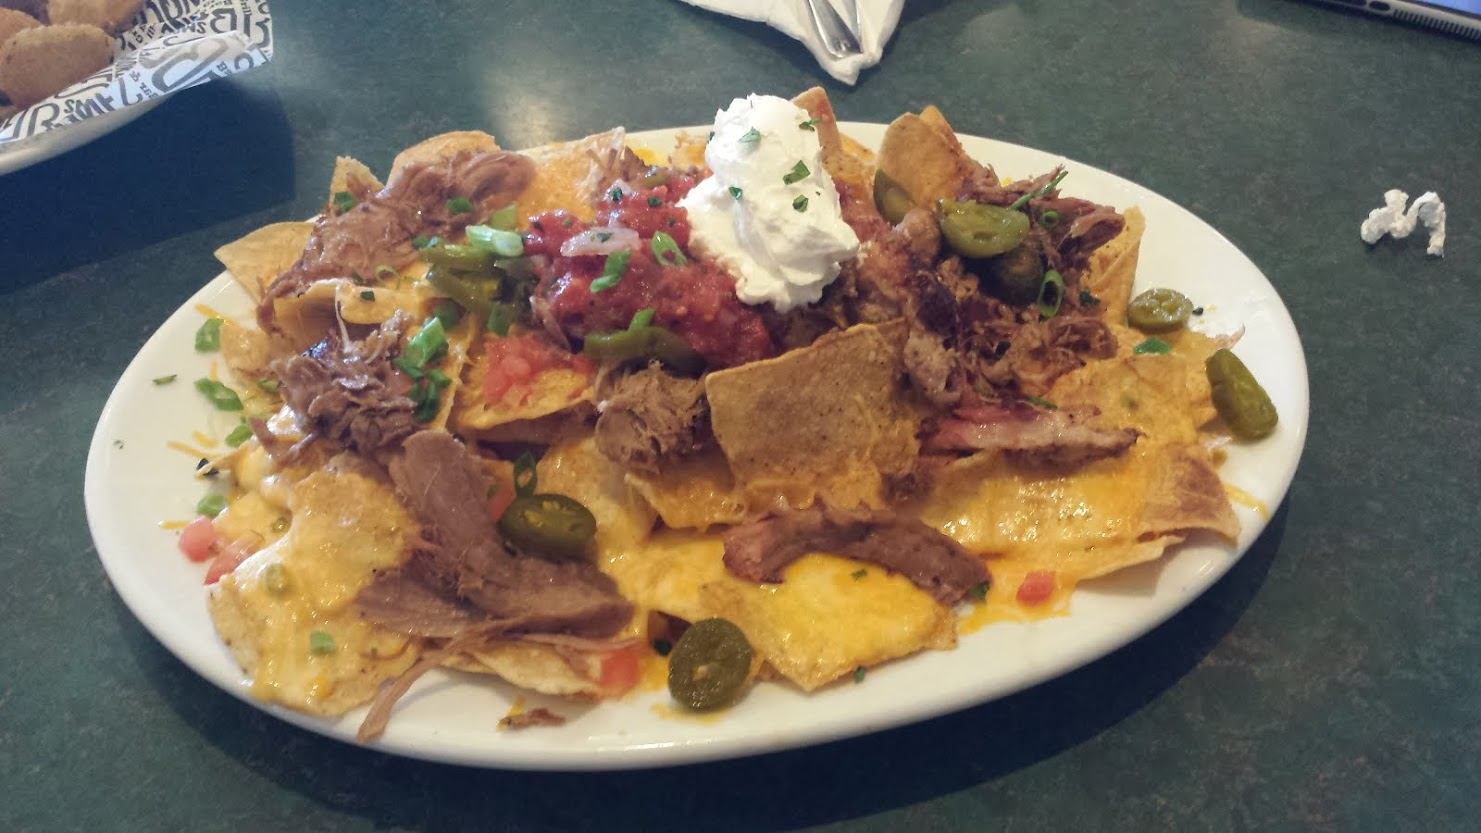 Tortilla Chips, Homemade Queso, Cheddar Jack Cheese, Tomatoes, Red Onions, Shredded Lettuce, Sour Cream, Homemade Fire-Roasted Salsa, Sliced Jalapeños, Pulled Pork.